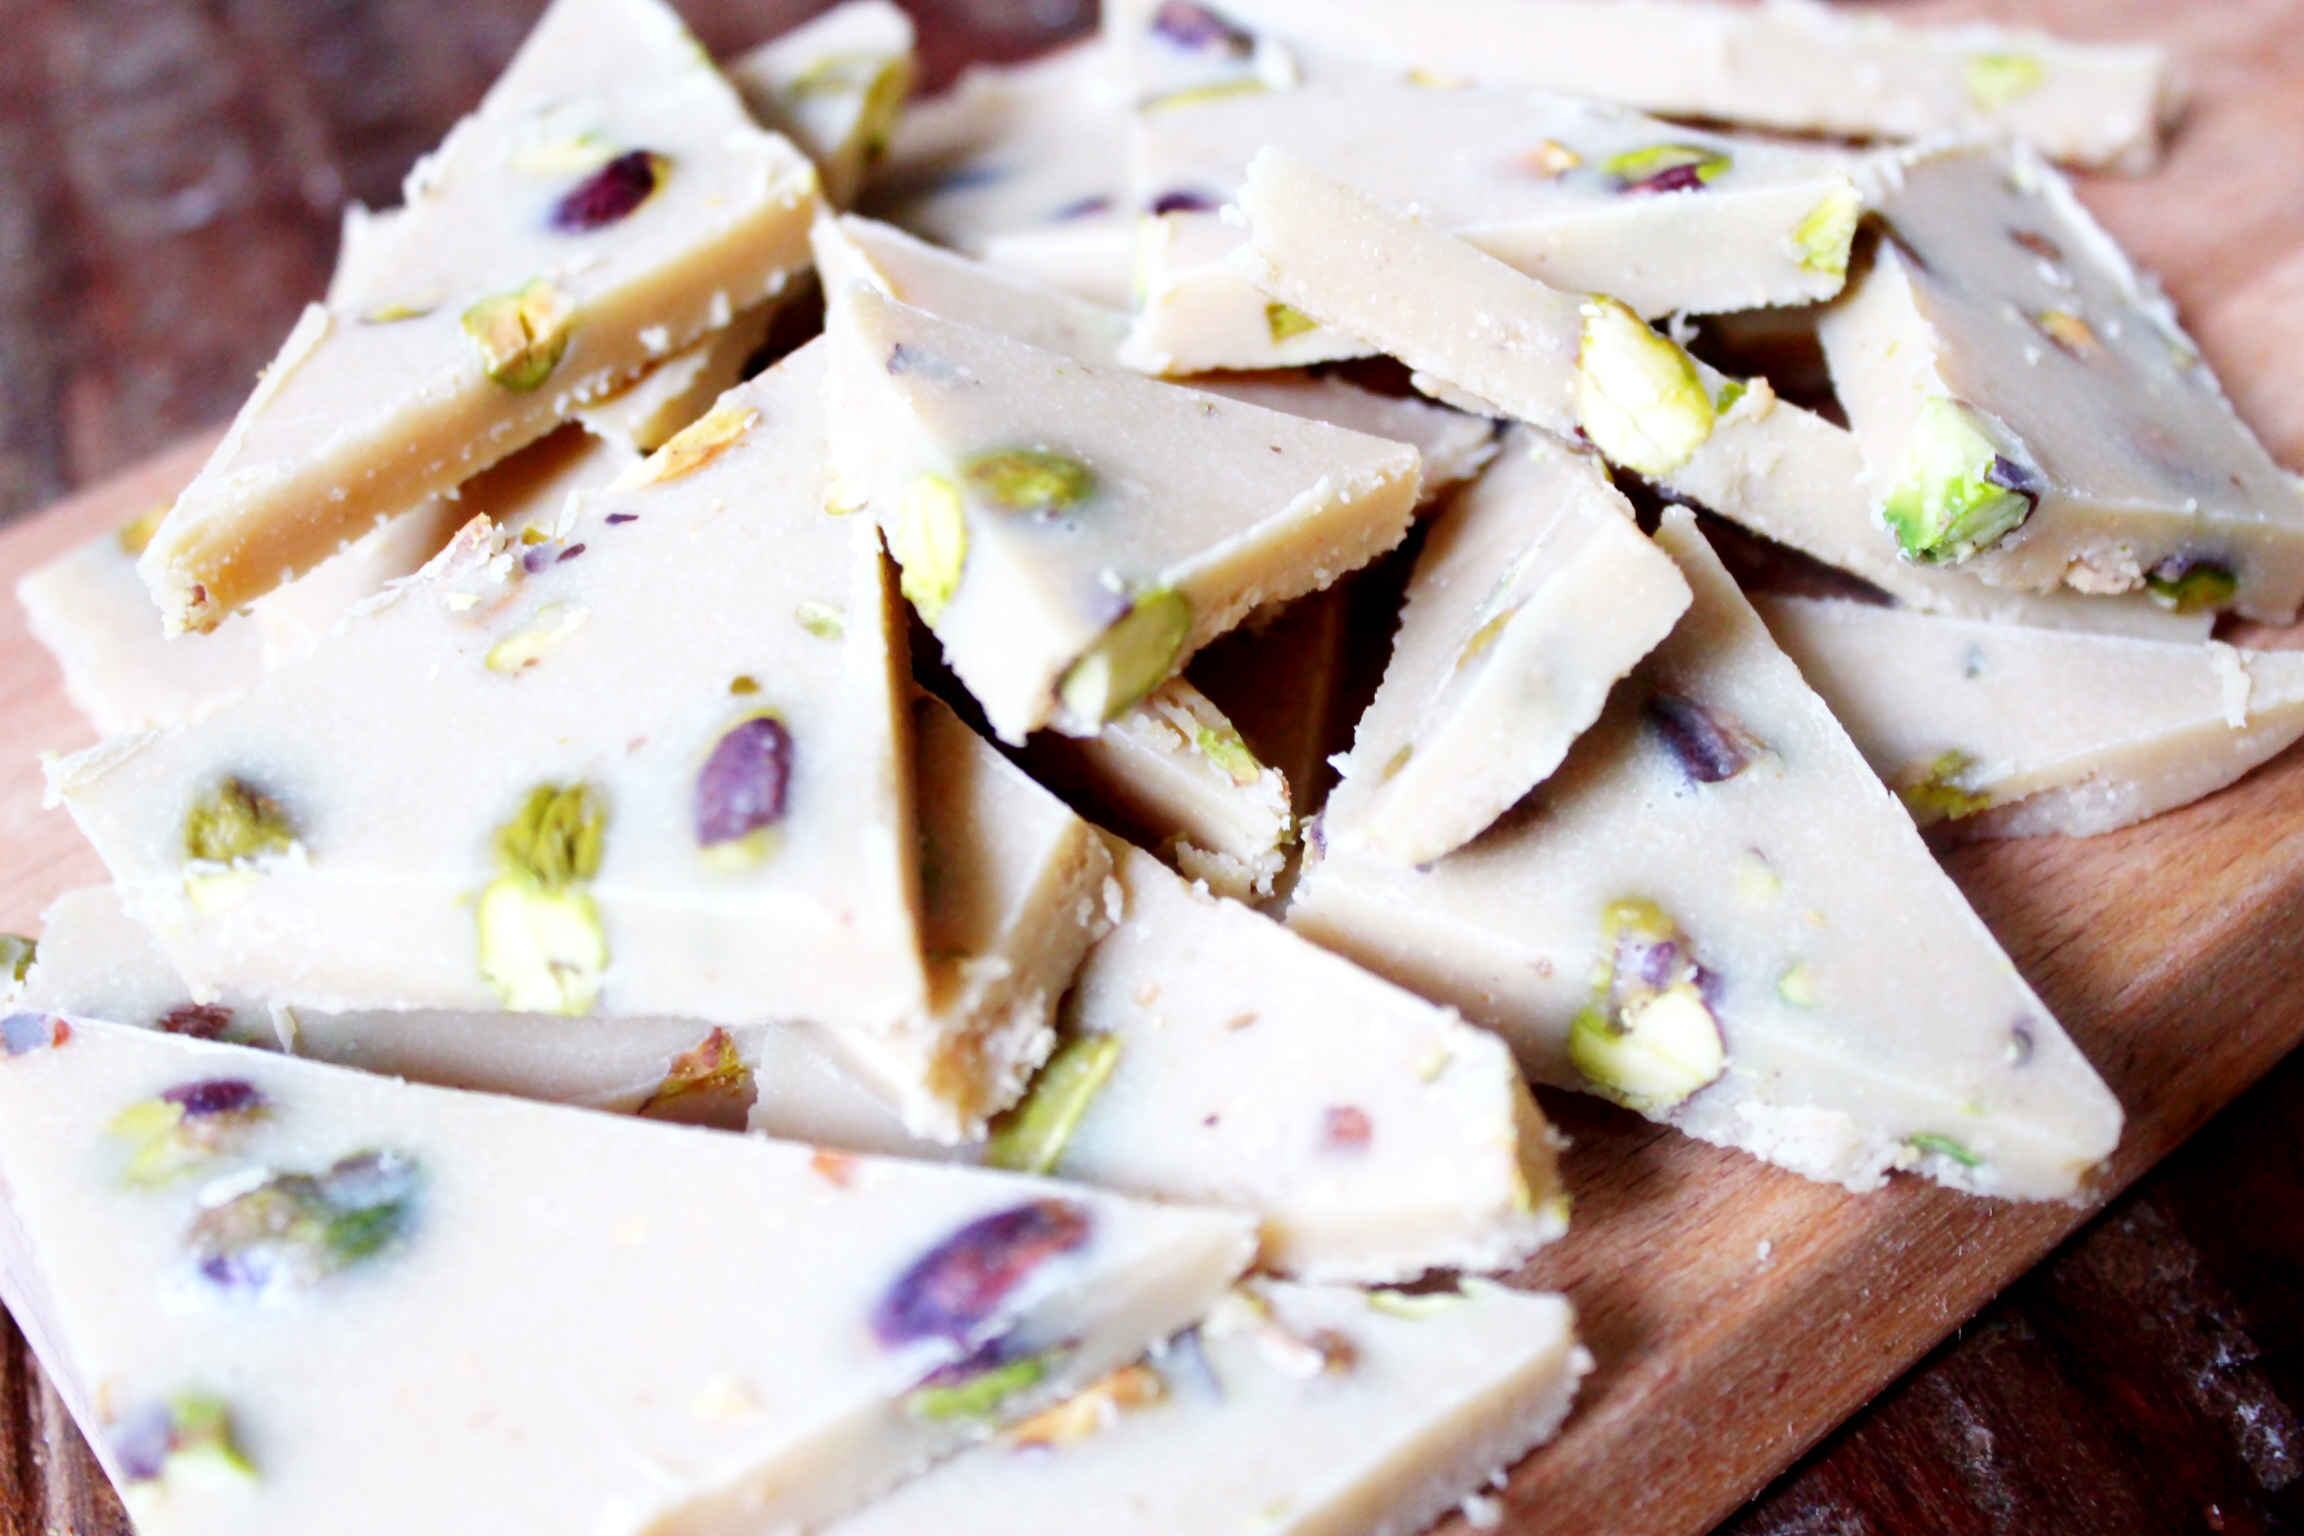 White Chocolate Bark with Salted Pistachios